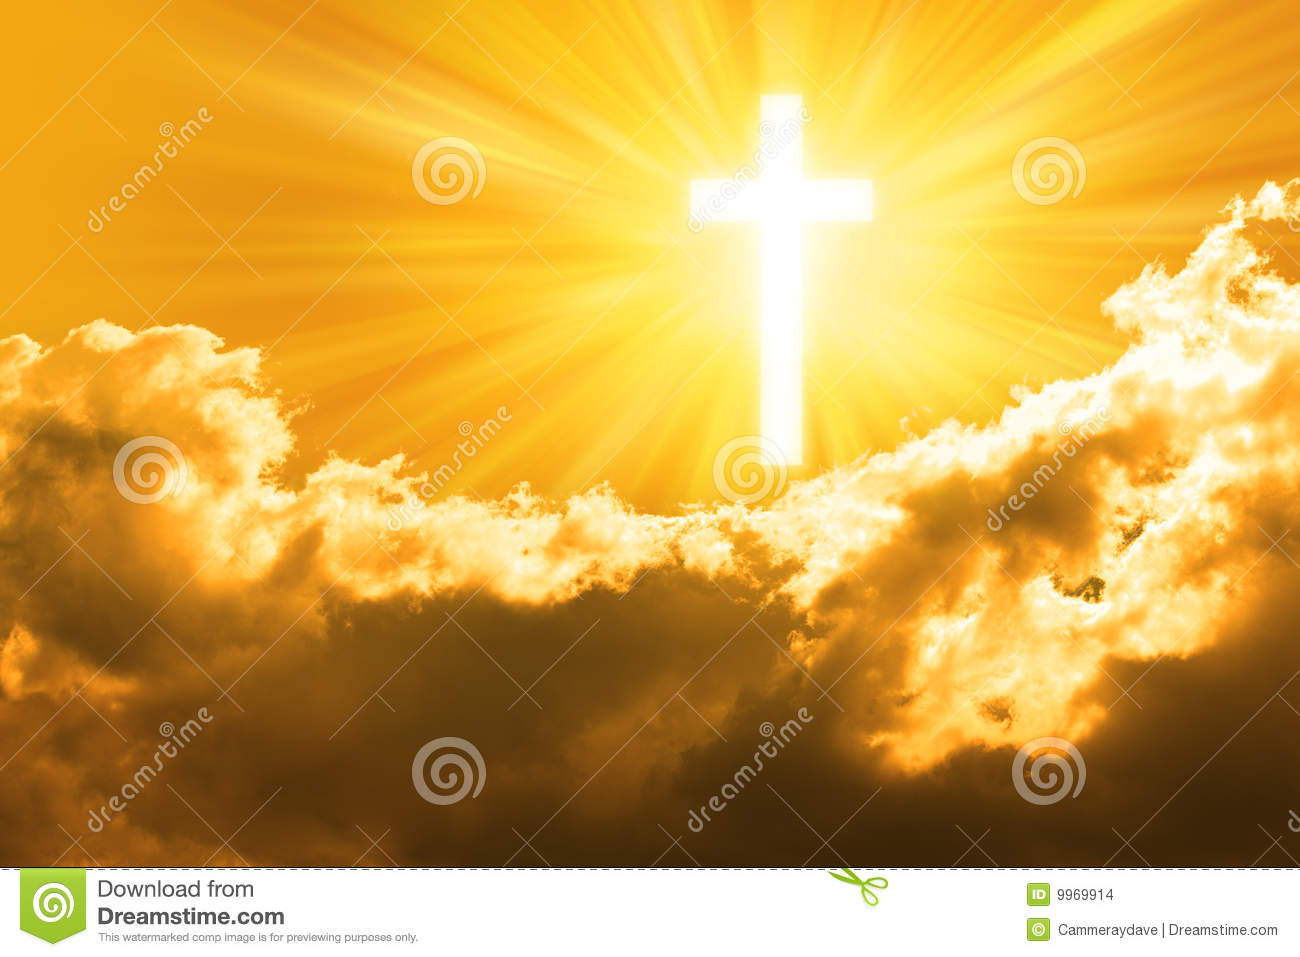 Christian Cross Sky God Background Stock Images - Image: 9969914